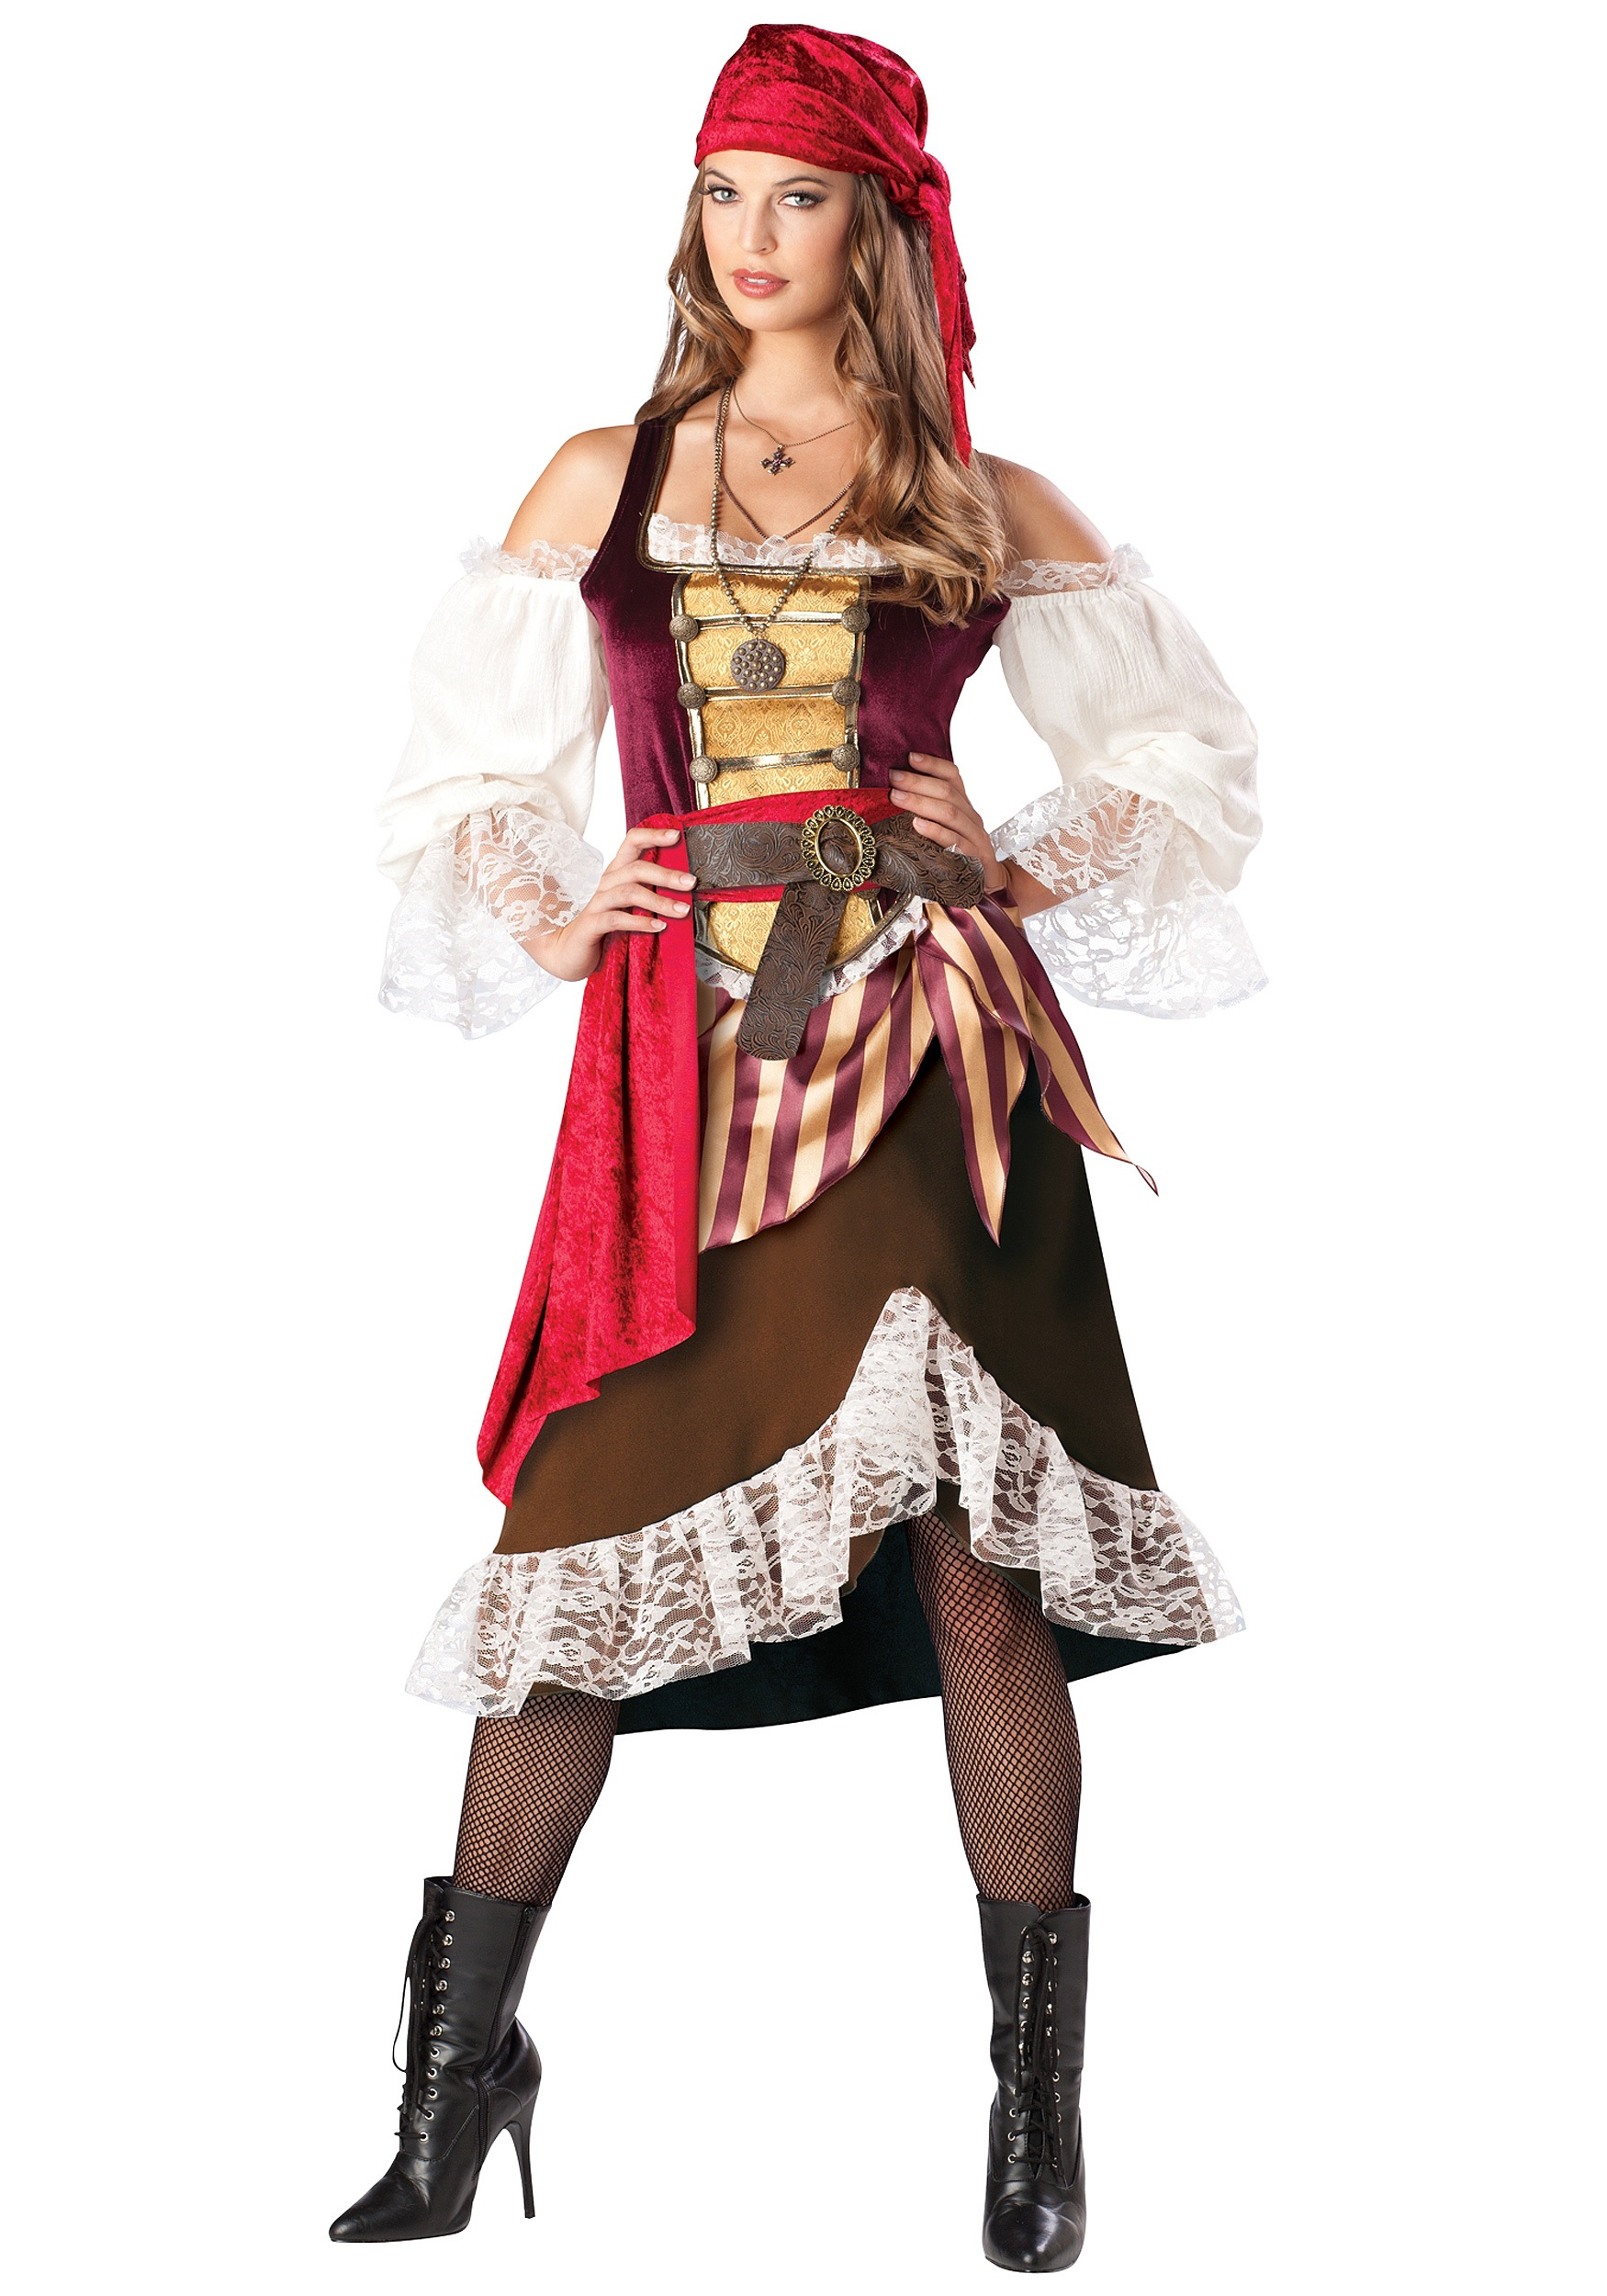 Deckhand Darlinu0027 Pirate Costume  sc 1 st  Halloween Costumes & Pirate Costumes for Women - Female Pirate Halloween Costume